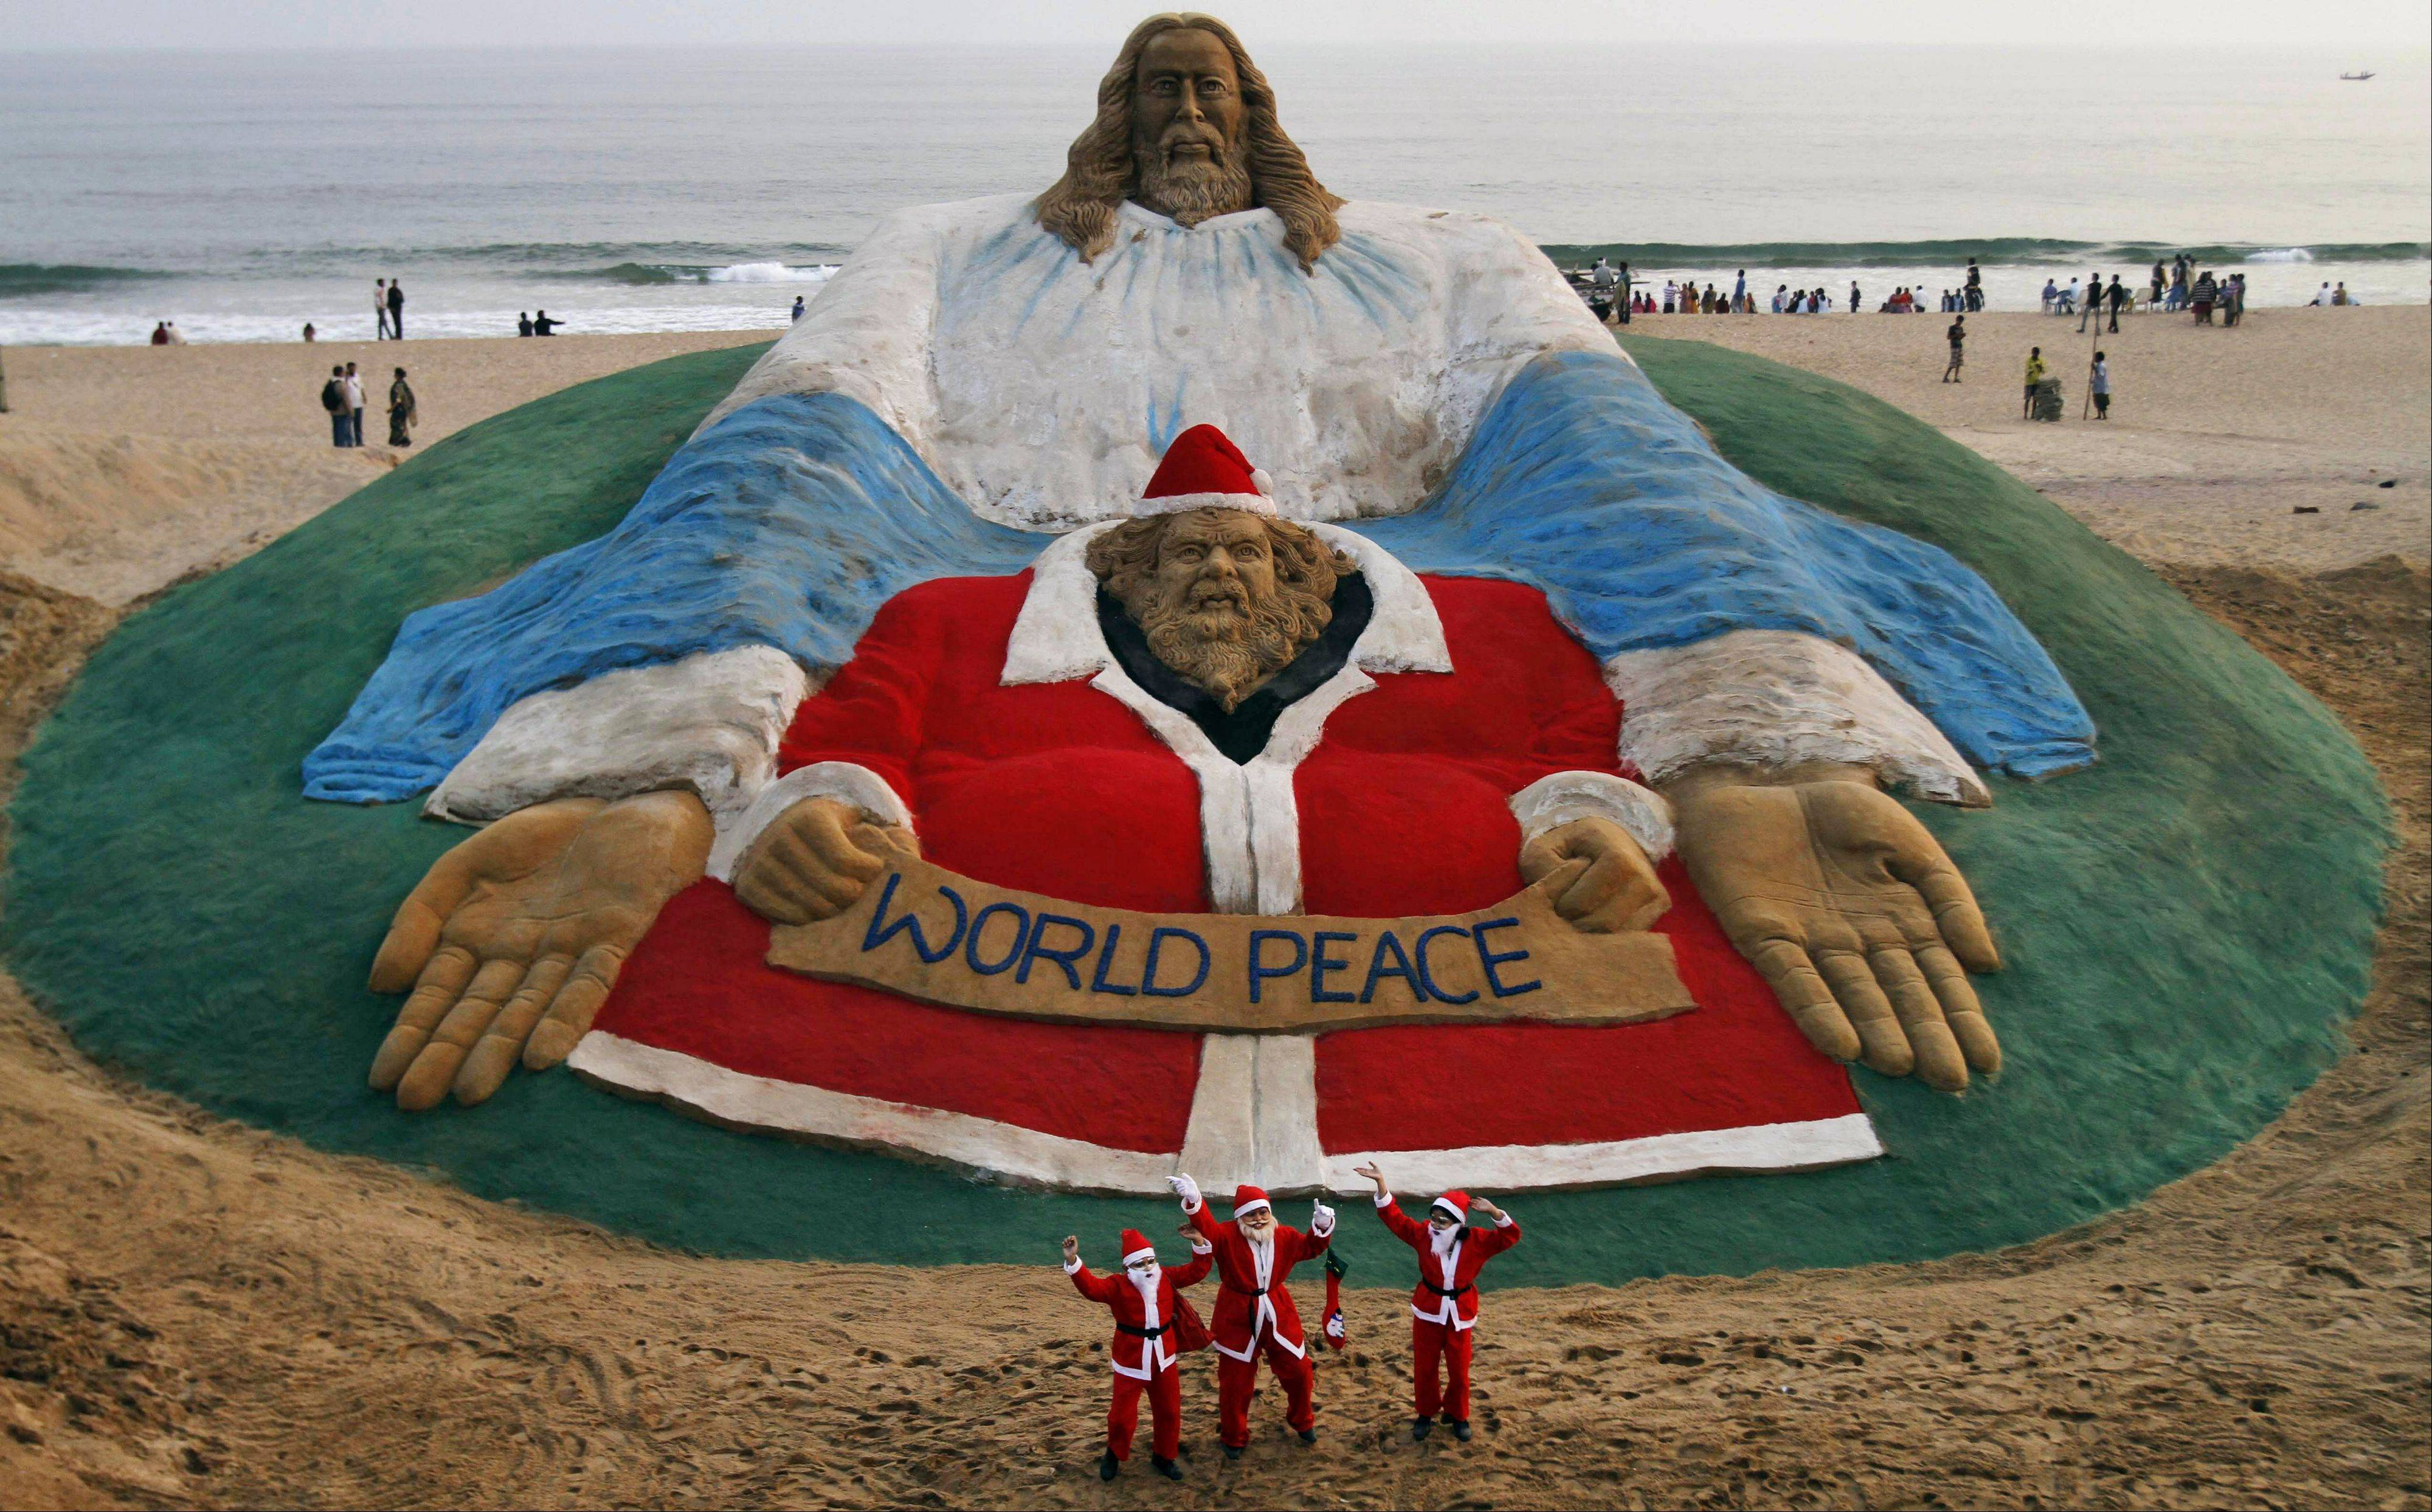 Indian children dressed as Santa Claus dance in front of a sculpture titled World Peace by sand artist Sudarshan Patnaik ahead of Christmas at a beach in Puri, in the eastern Indian city of Bhubaneswar, India, Tuesday, Dec. 24, 2013. Though Hindus and Muslims comprise the majority of the population in India, Christmas is celebrated with much fanfare.